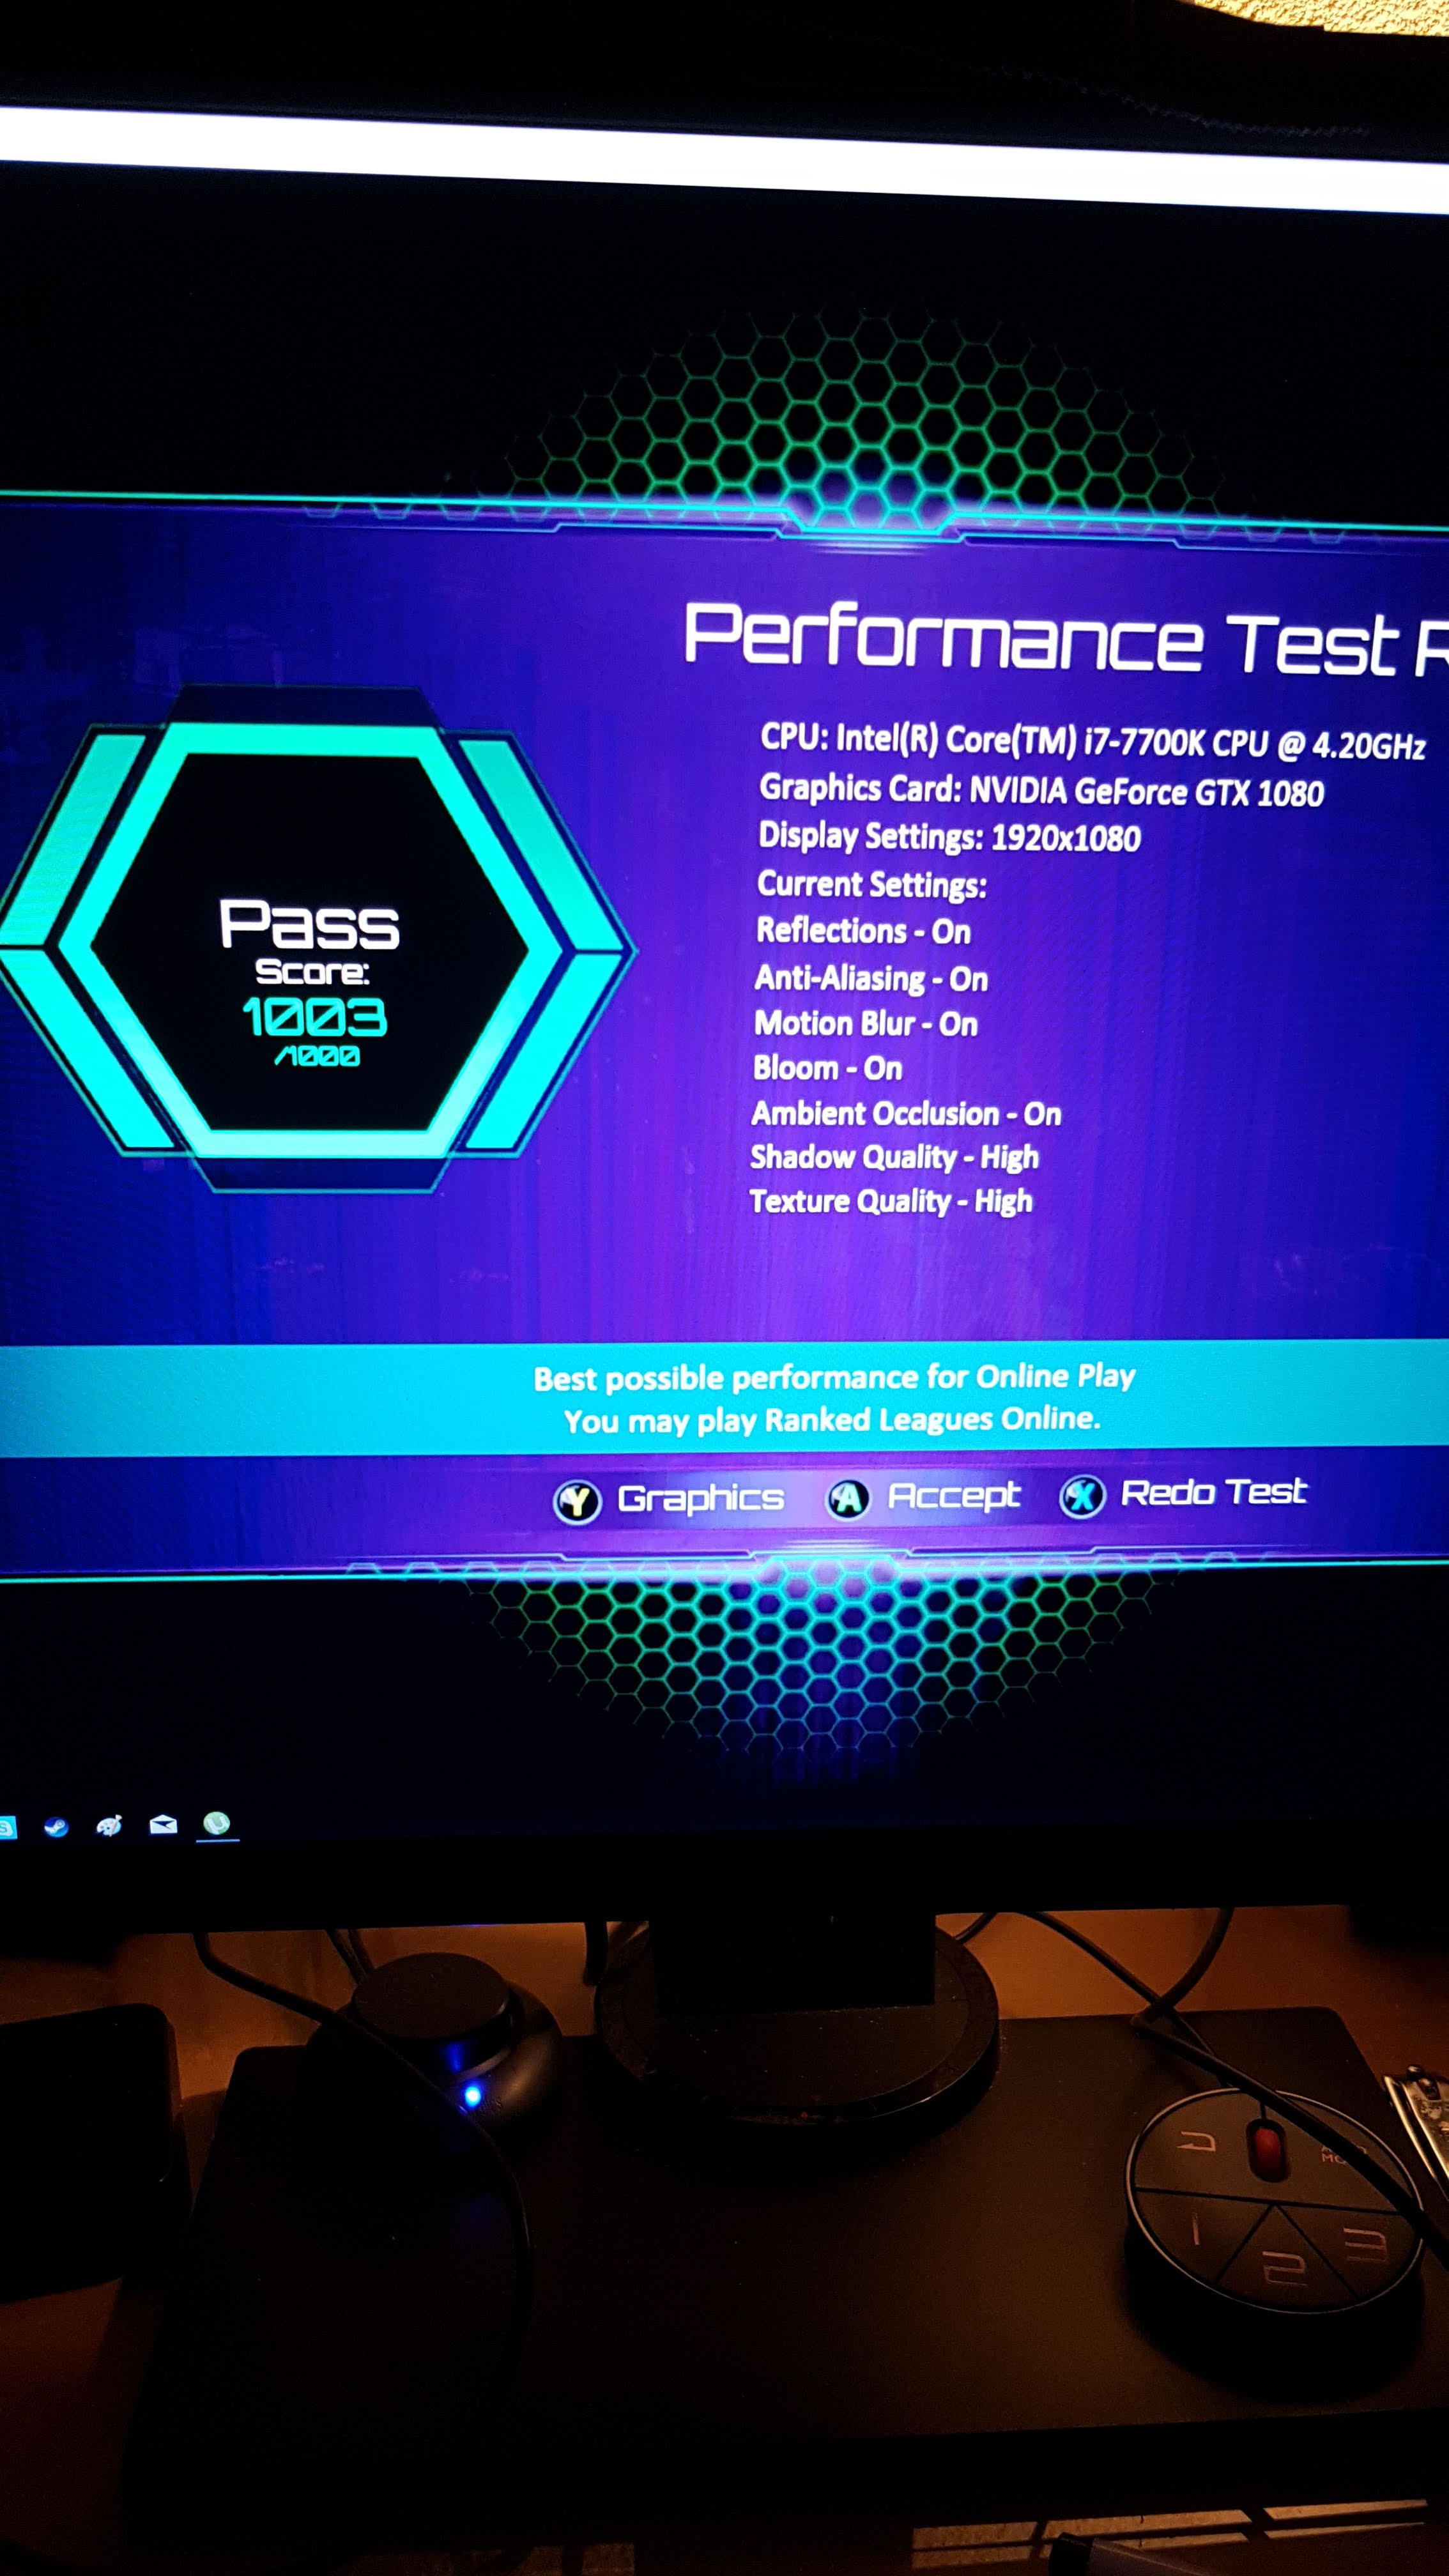 New pc setup bad performance test - General Discussion